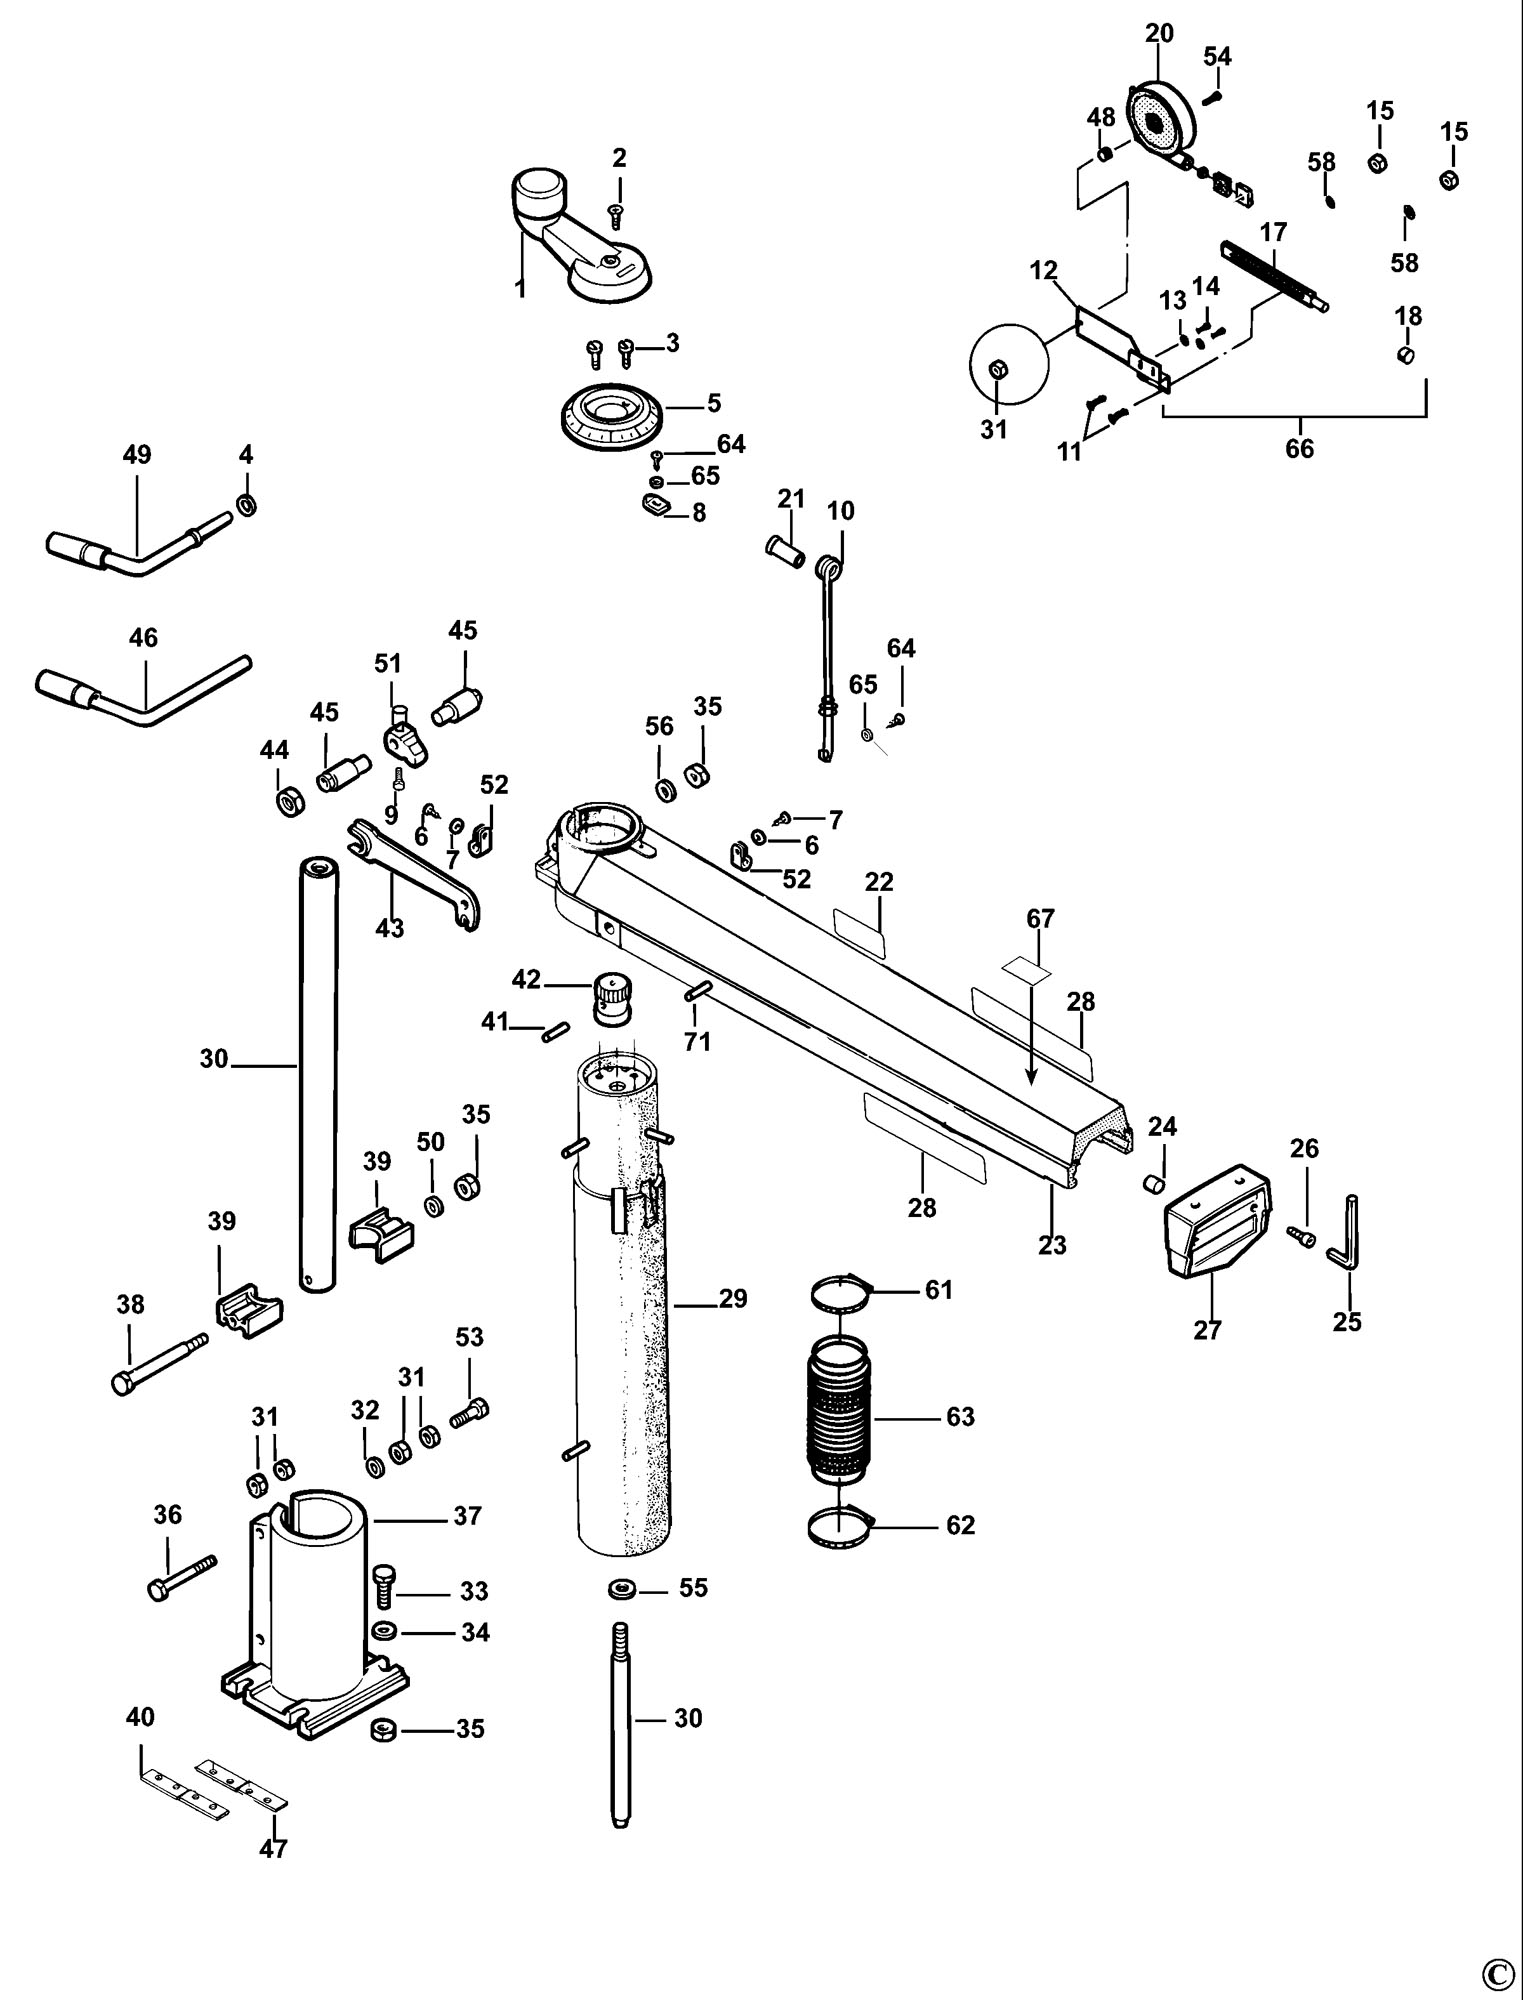 band saw parts diagram spares for dewalt dw721kn radial arm saw (type 2) spare ... #8